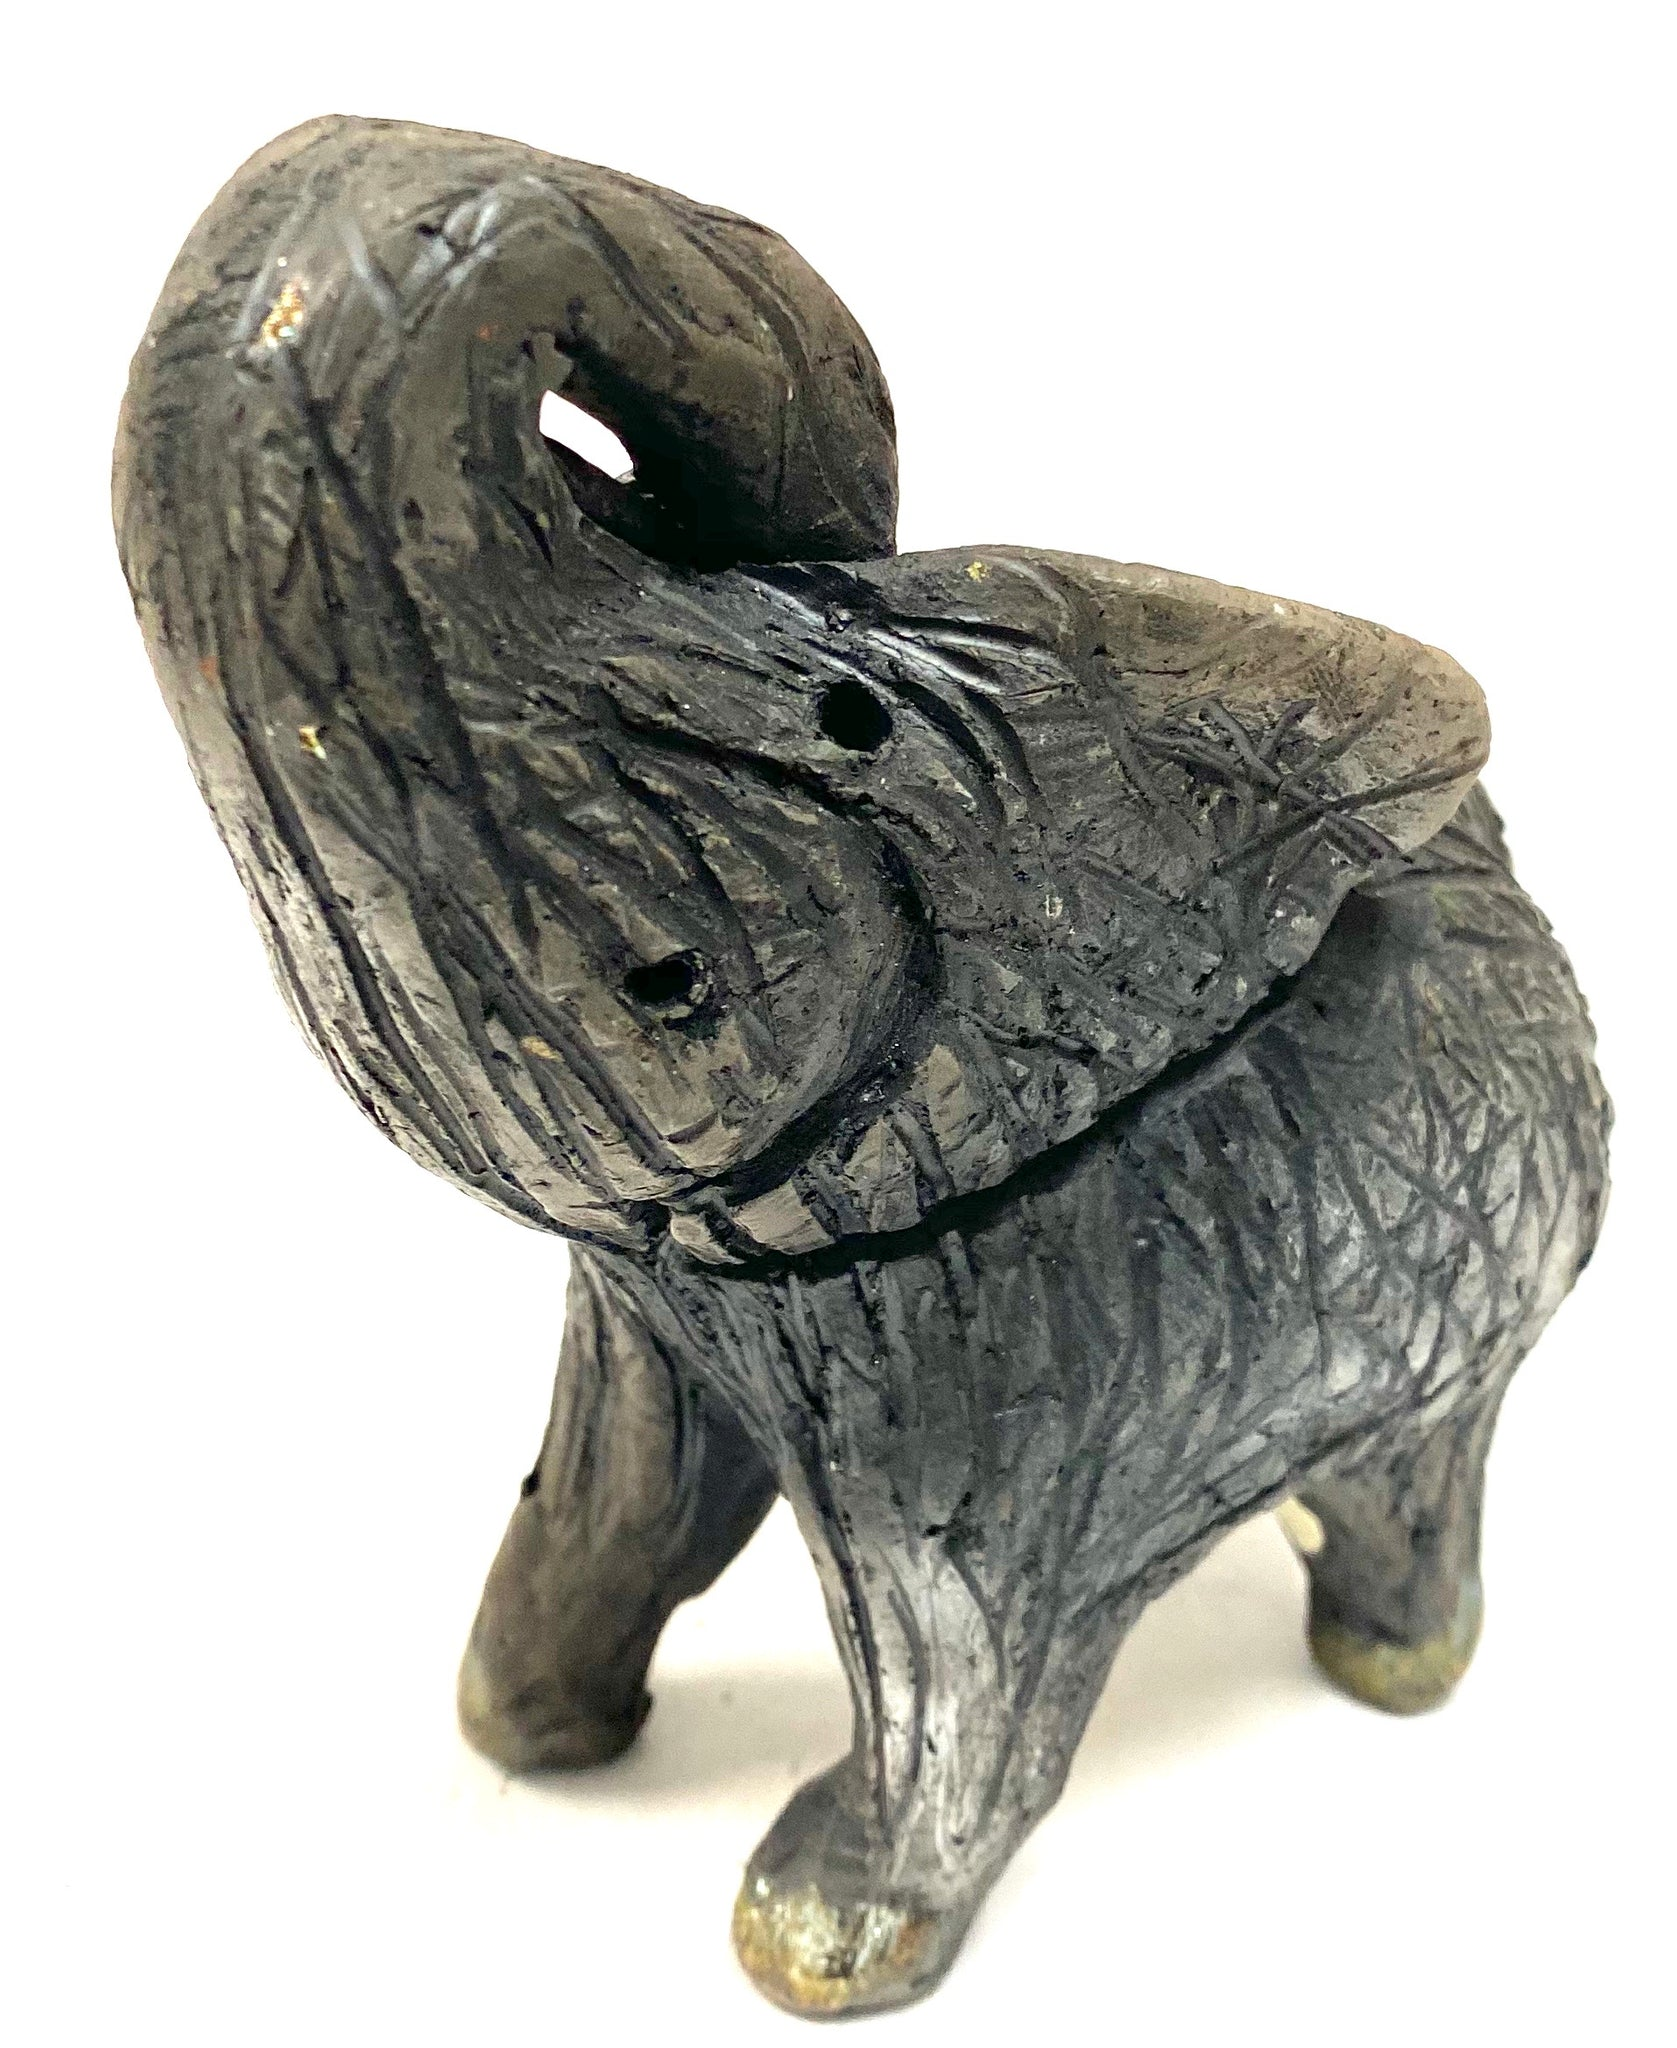 "Have you HERD!!!!!!     Elephants are one of my favorite animals to create. They are so majestic""  Just one of these lovely Raku Fired Elephant will make an excellent gift for your  BFF,  or just for you .    This baby raku fired elephant stands 4"" x 3"" x 4.5"" and weighs 10 ounces. She tusk less with a textured charcoal  body. Nice!"